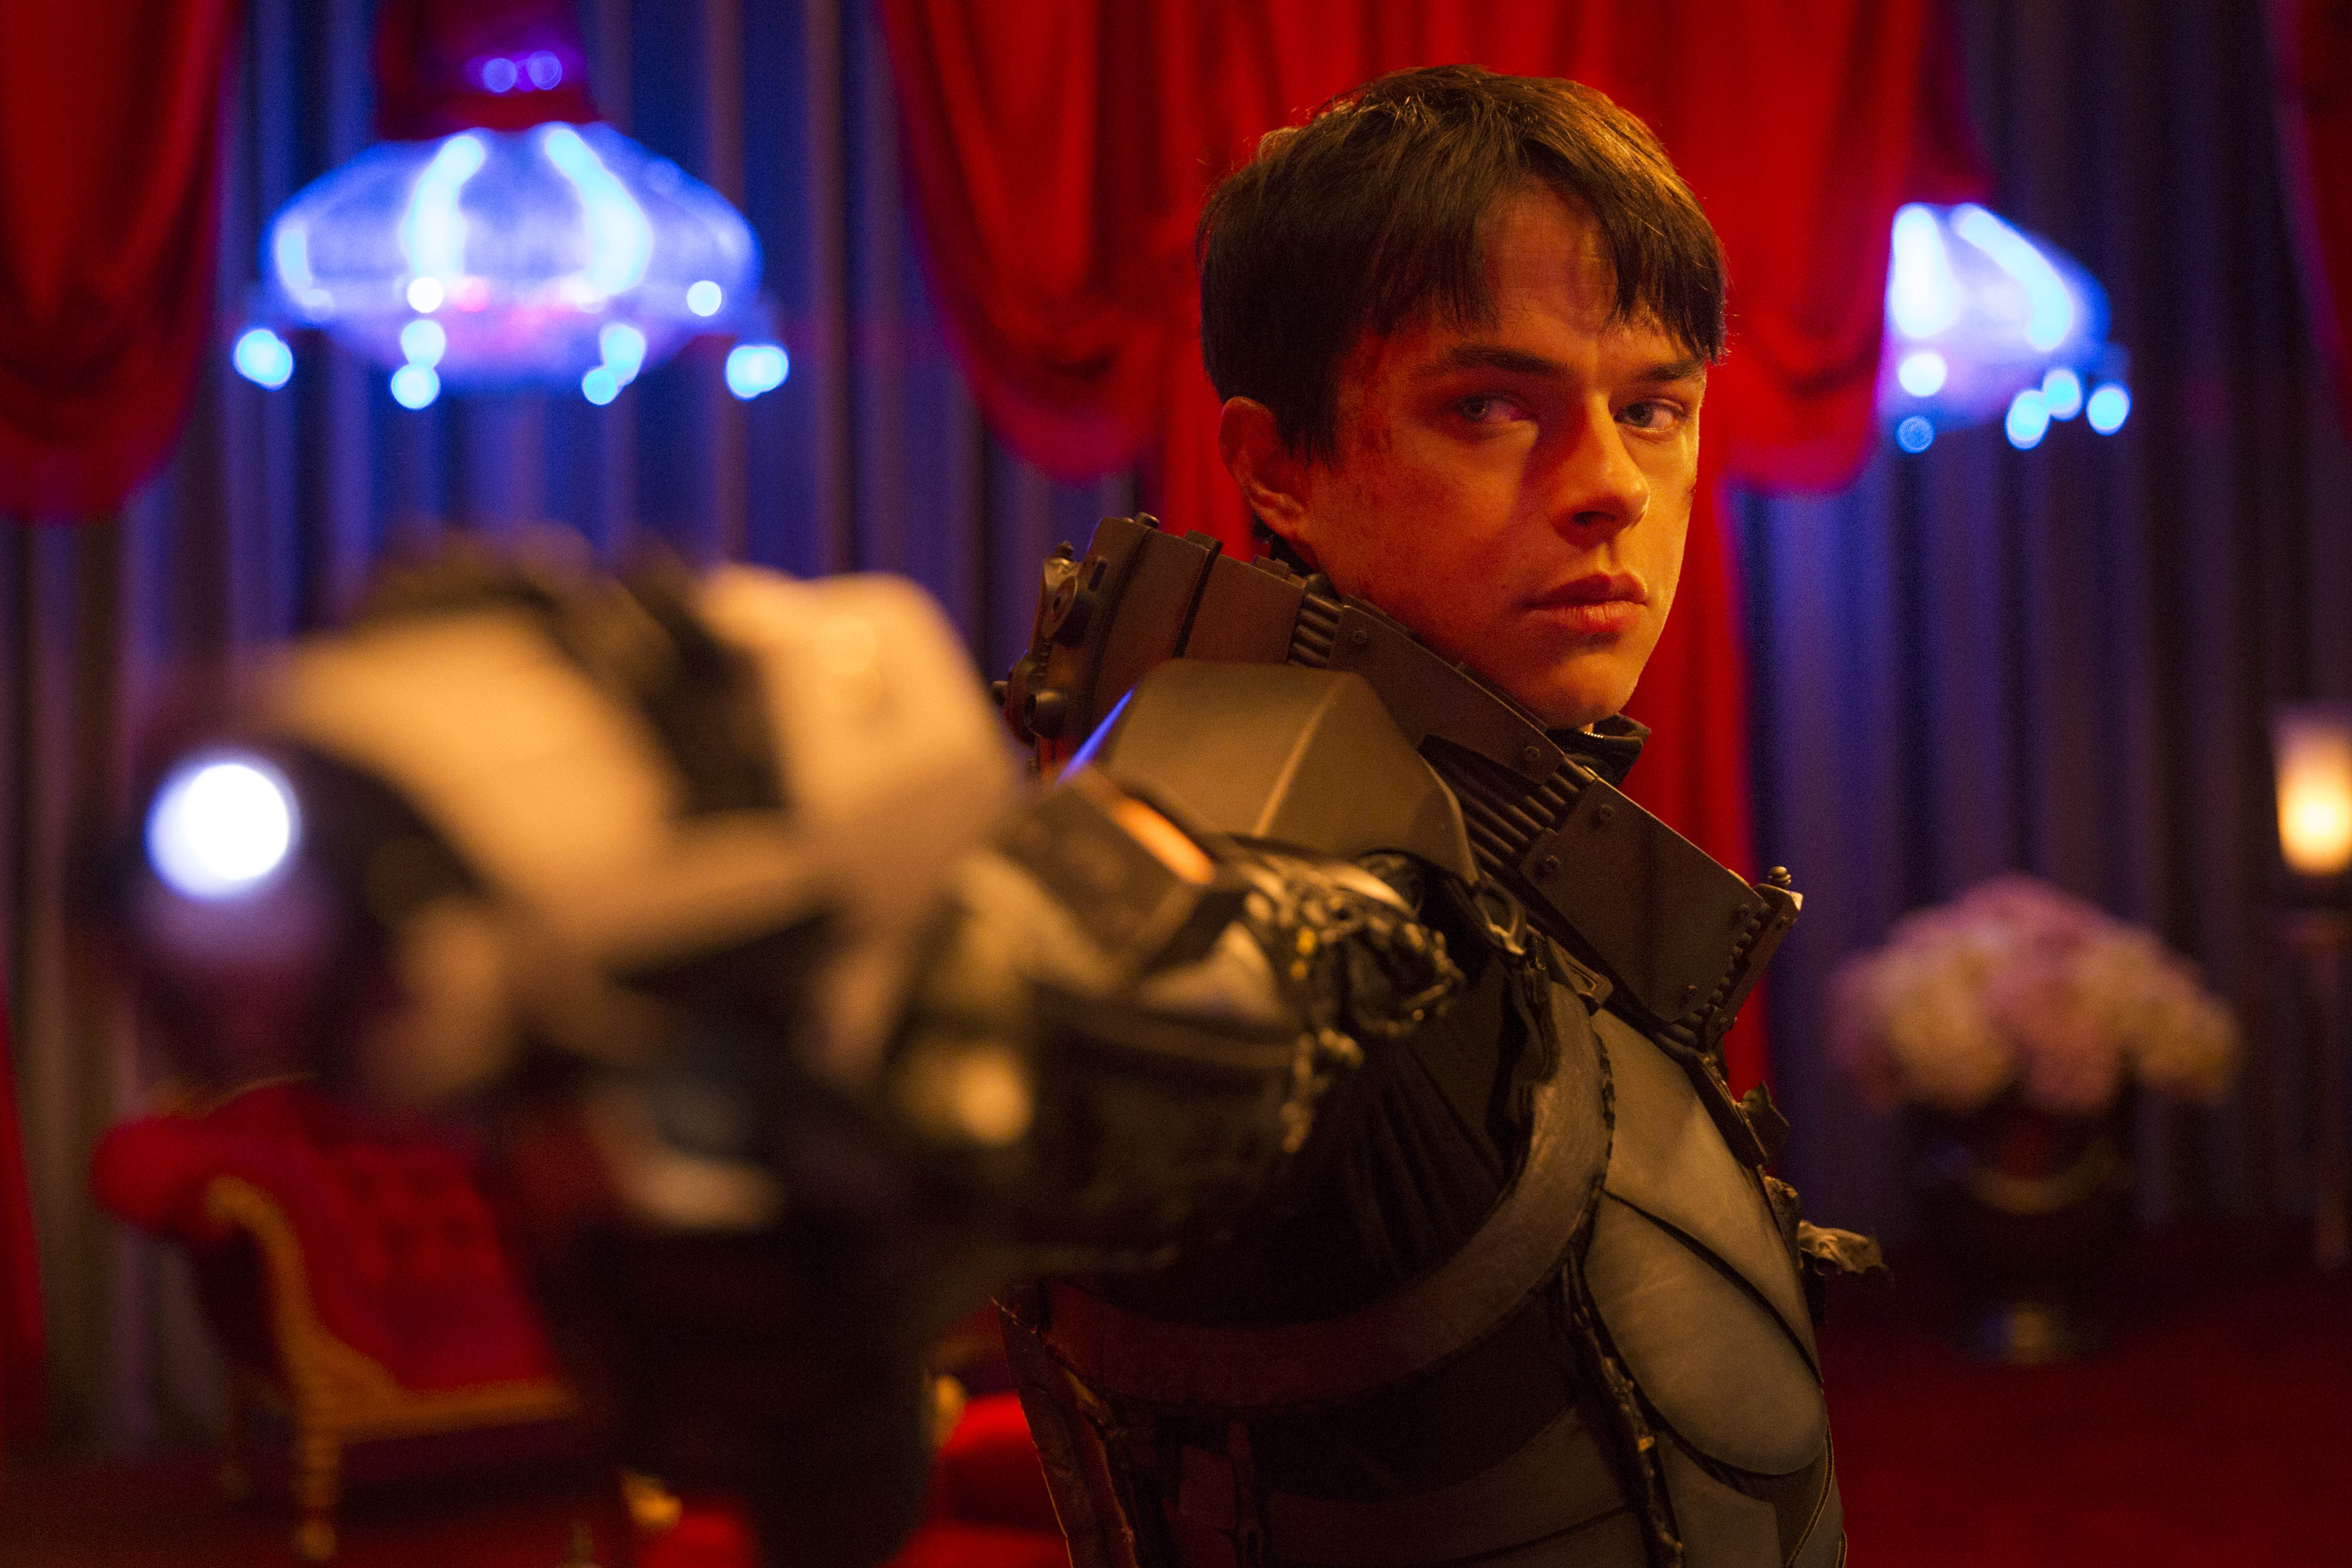 Dane DeHaan shows off his lack of acting chops in Valerian and the City of a Thousand Planets.